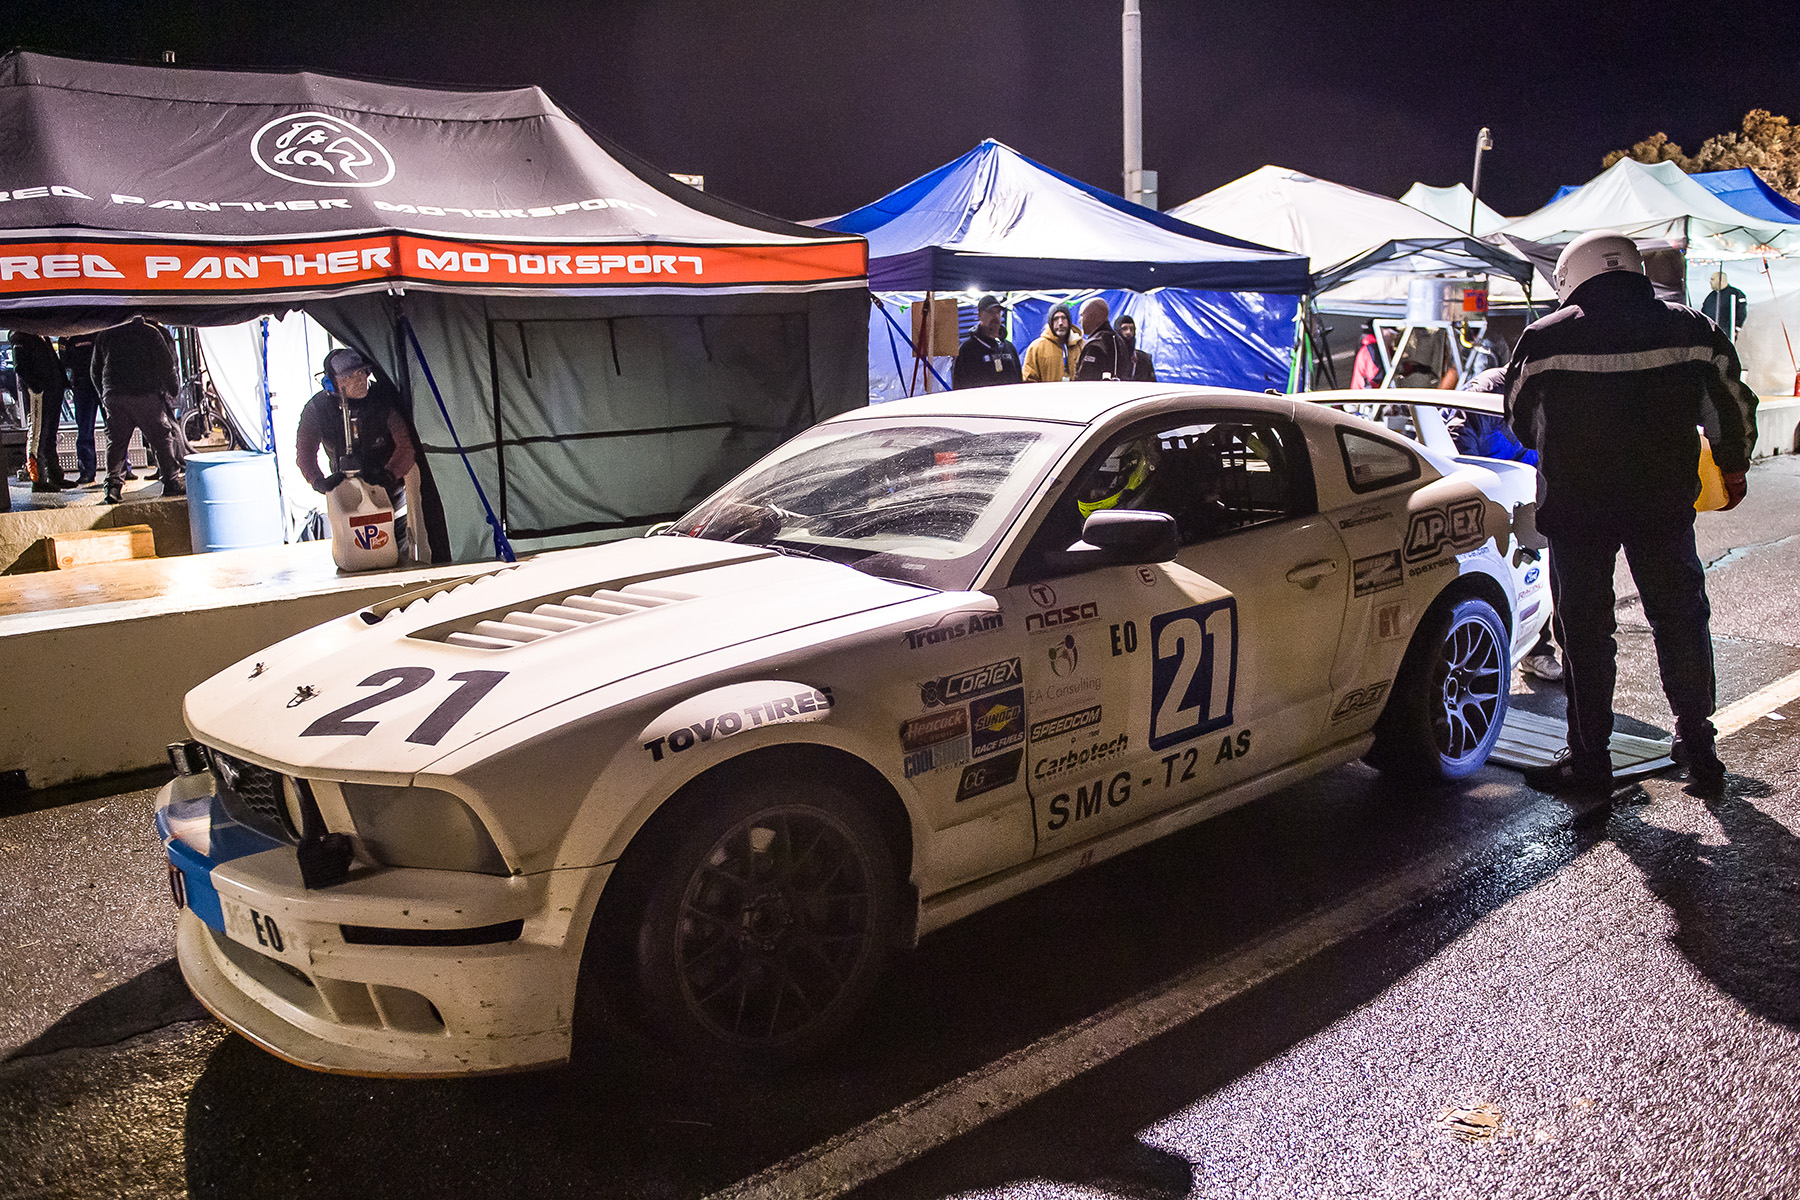 NASA 25 Hours of Thunderhill presented by Hawk Performance - Ford Mustang GT with APEX Wheels